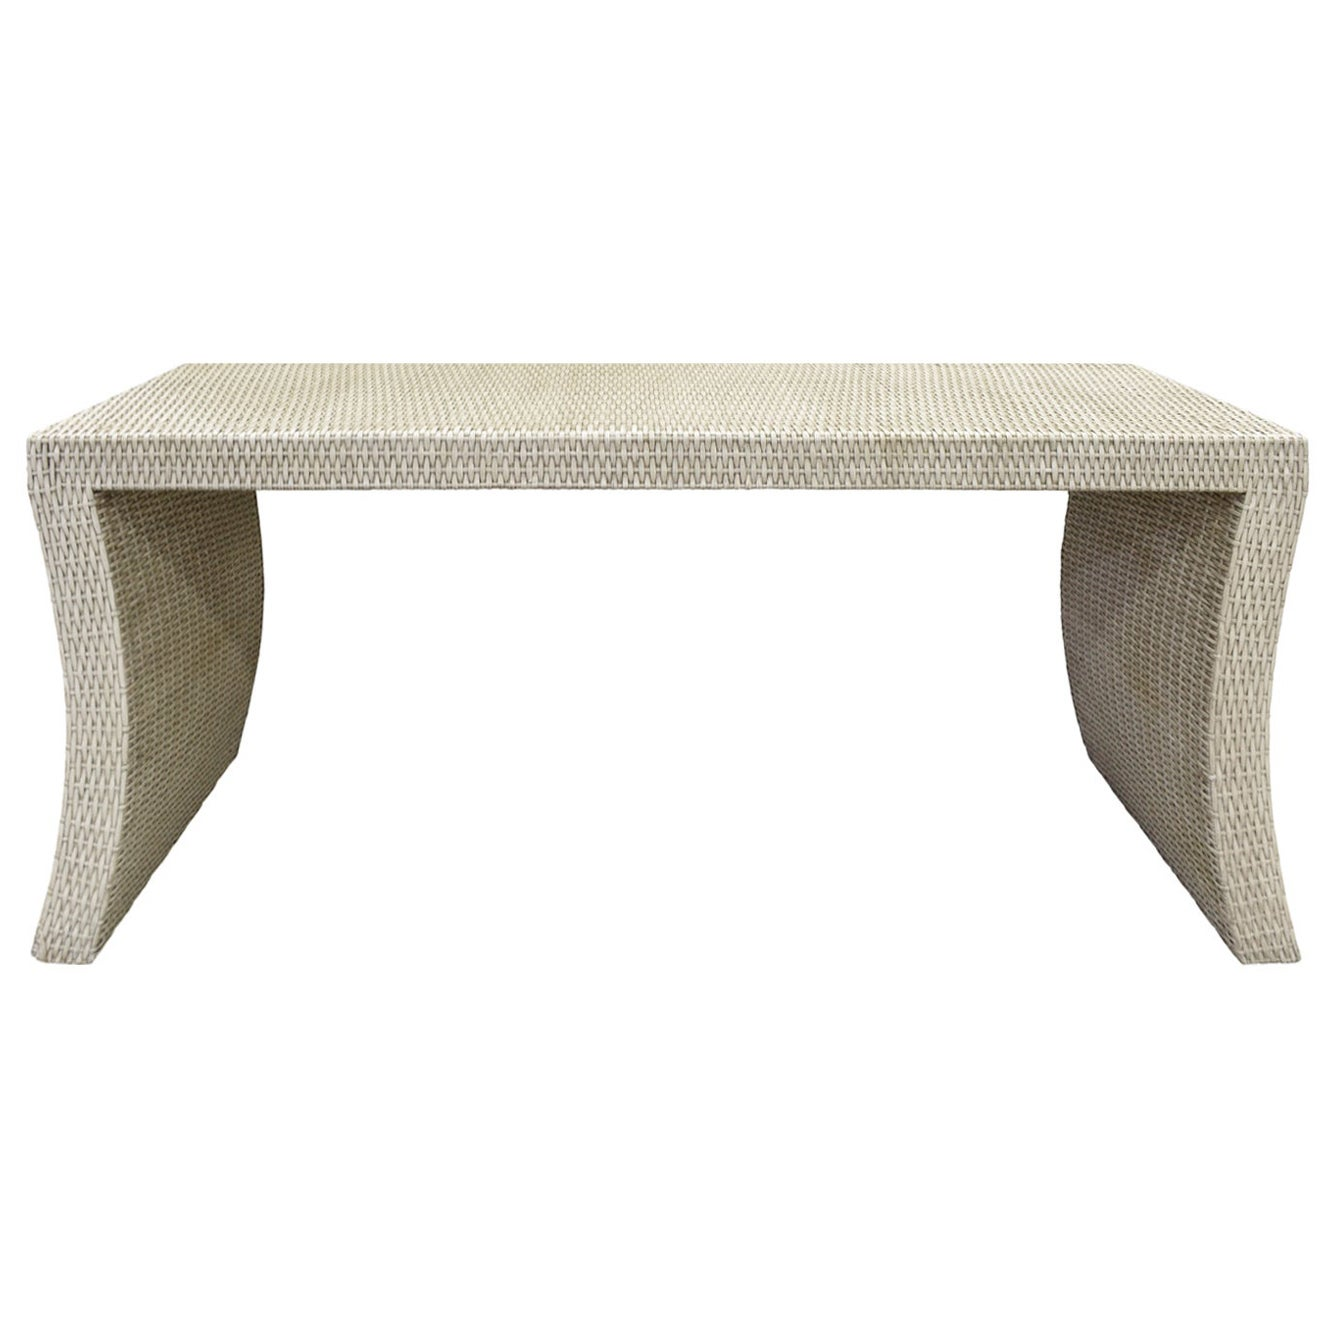 Console Table in Wicker in the Style of Karl Springer, 1970s